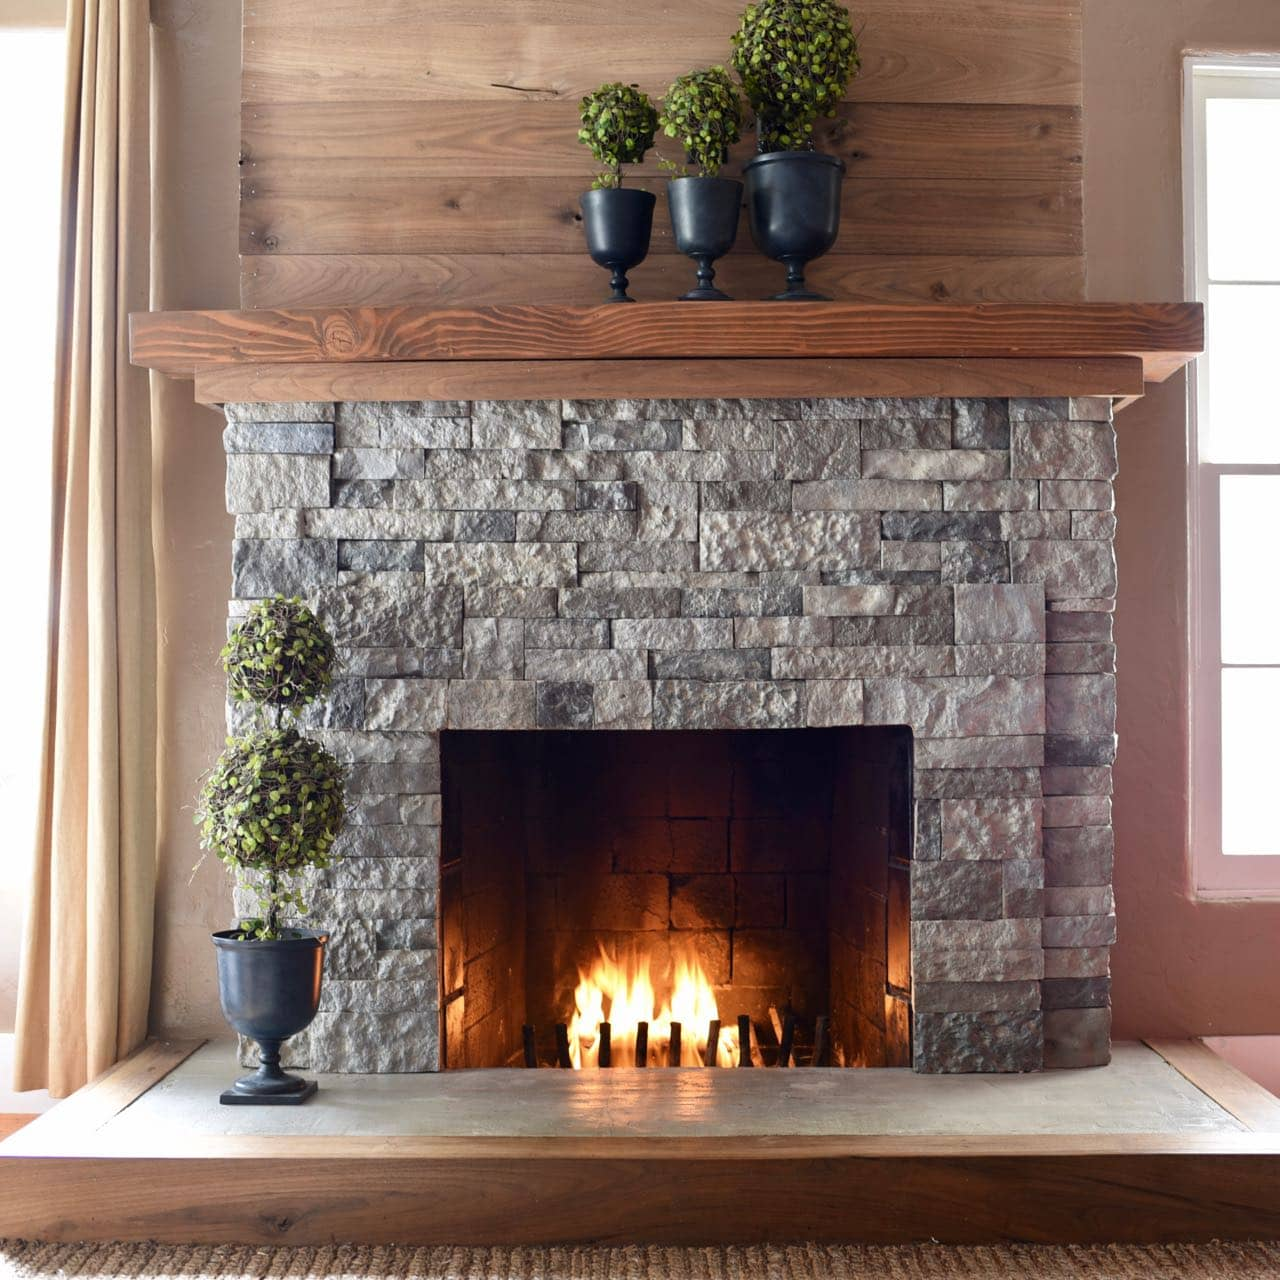 Update Old Brick Fireplace Airstone Fireplace Makeover From Ugly To Incredible